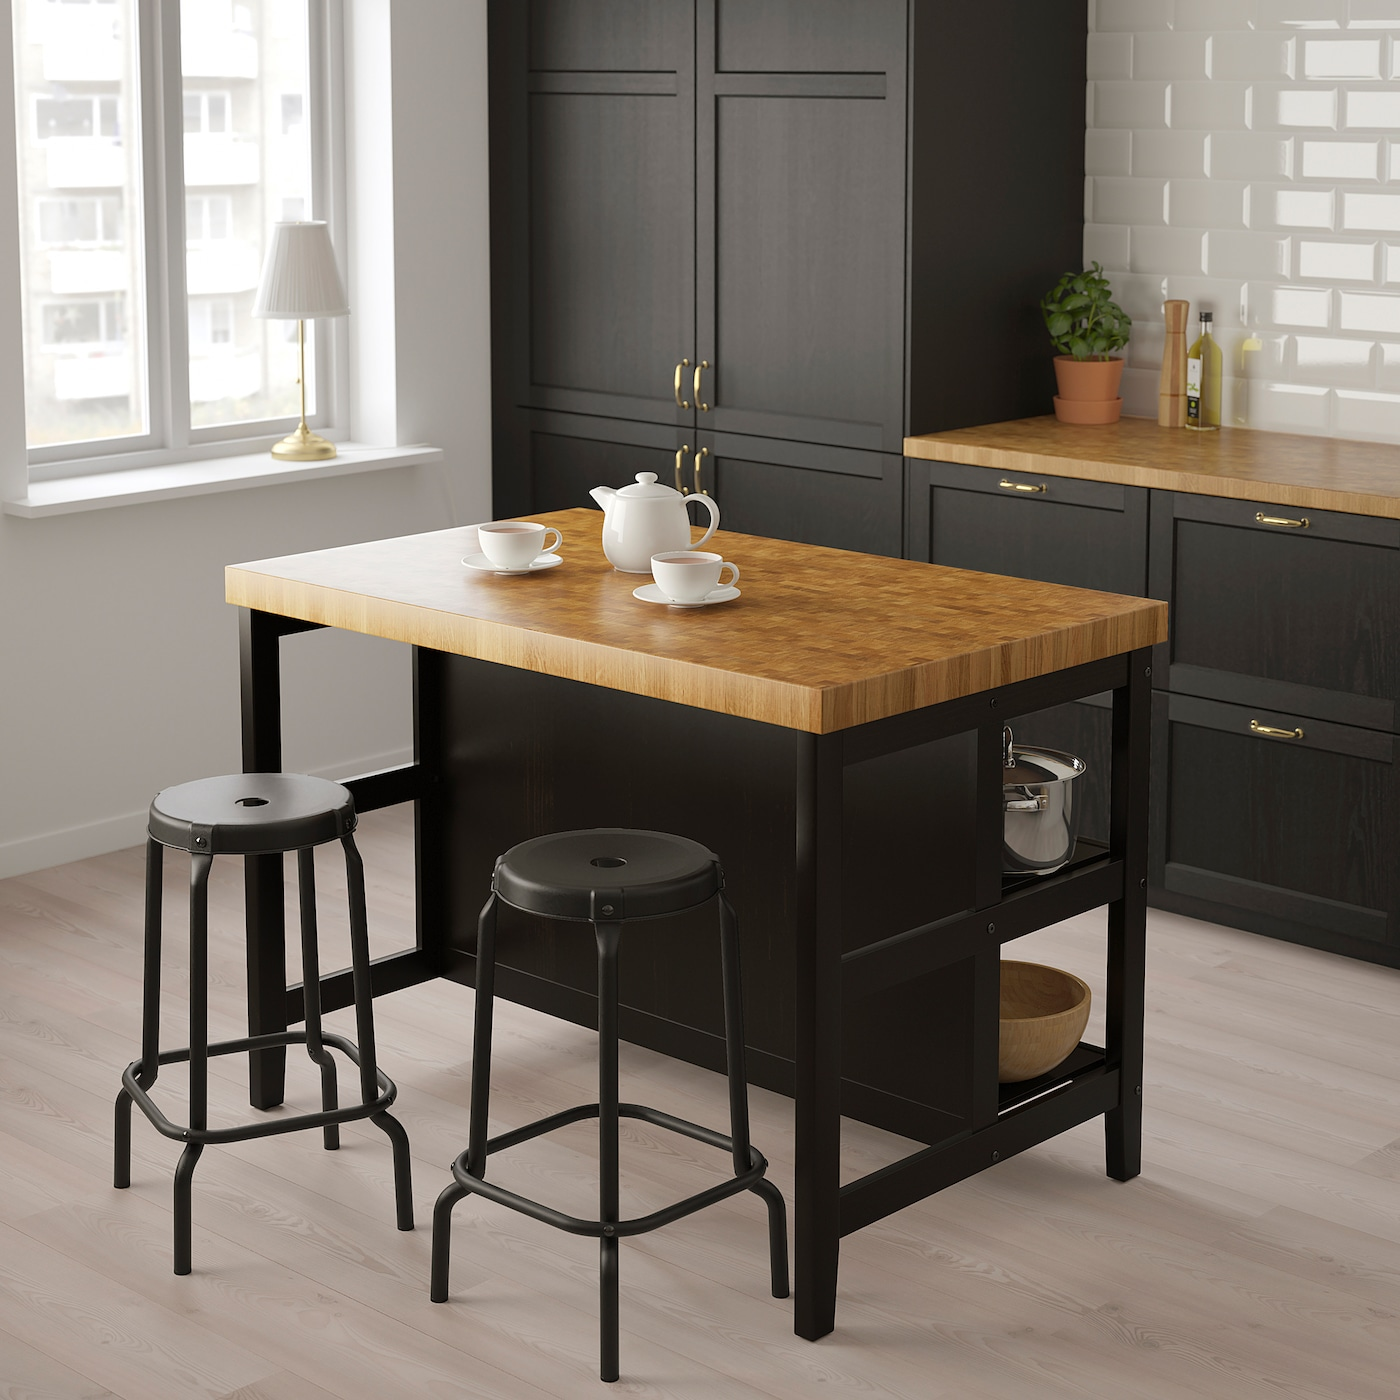 VADHOLMA Kitchen island - black/oak 8x8x8 cm